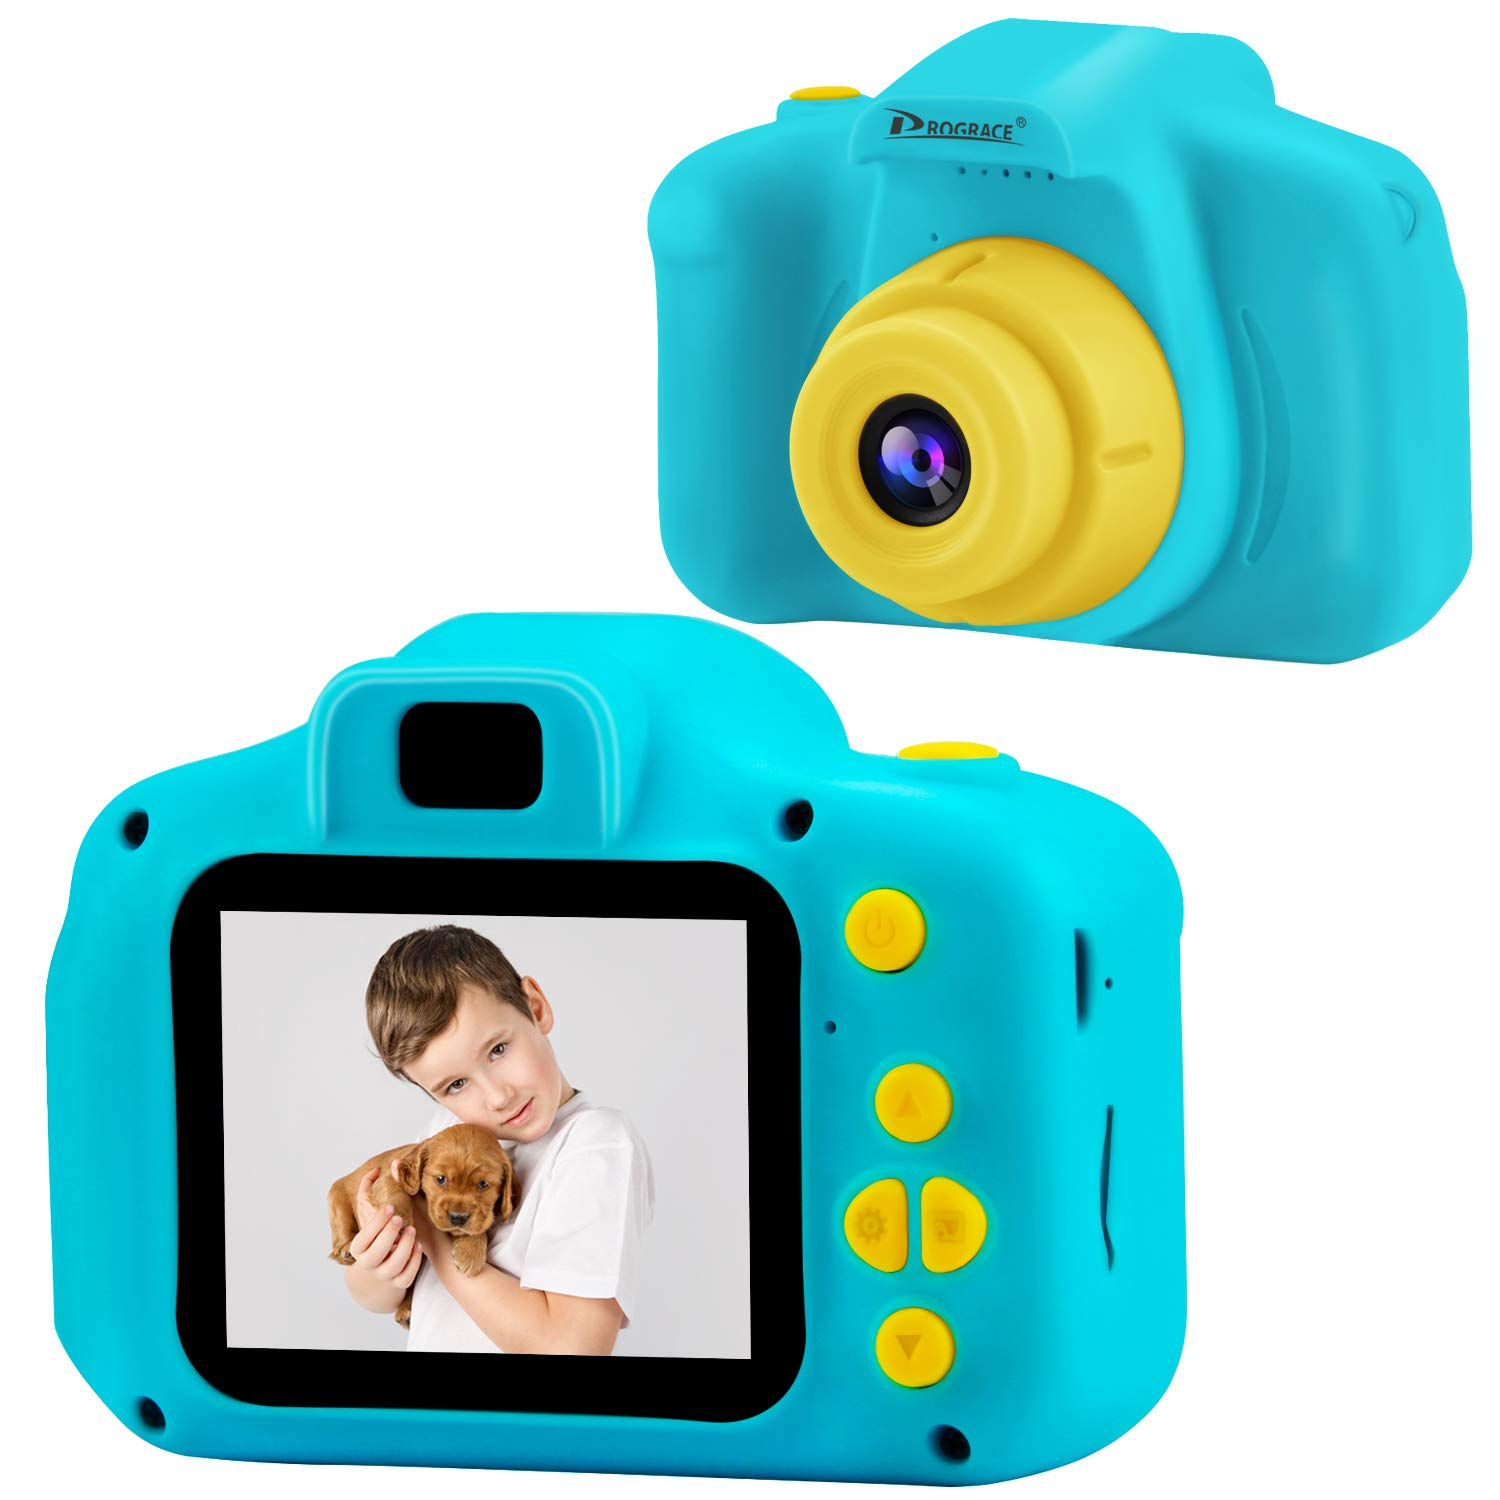 Prograce Kids Camera Children Digital Cameras for Boys Birthday Toy Gifts 4-12 Year Old Kid Action Camera Toddler Video Recorder 1080P IPS 2 Inch